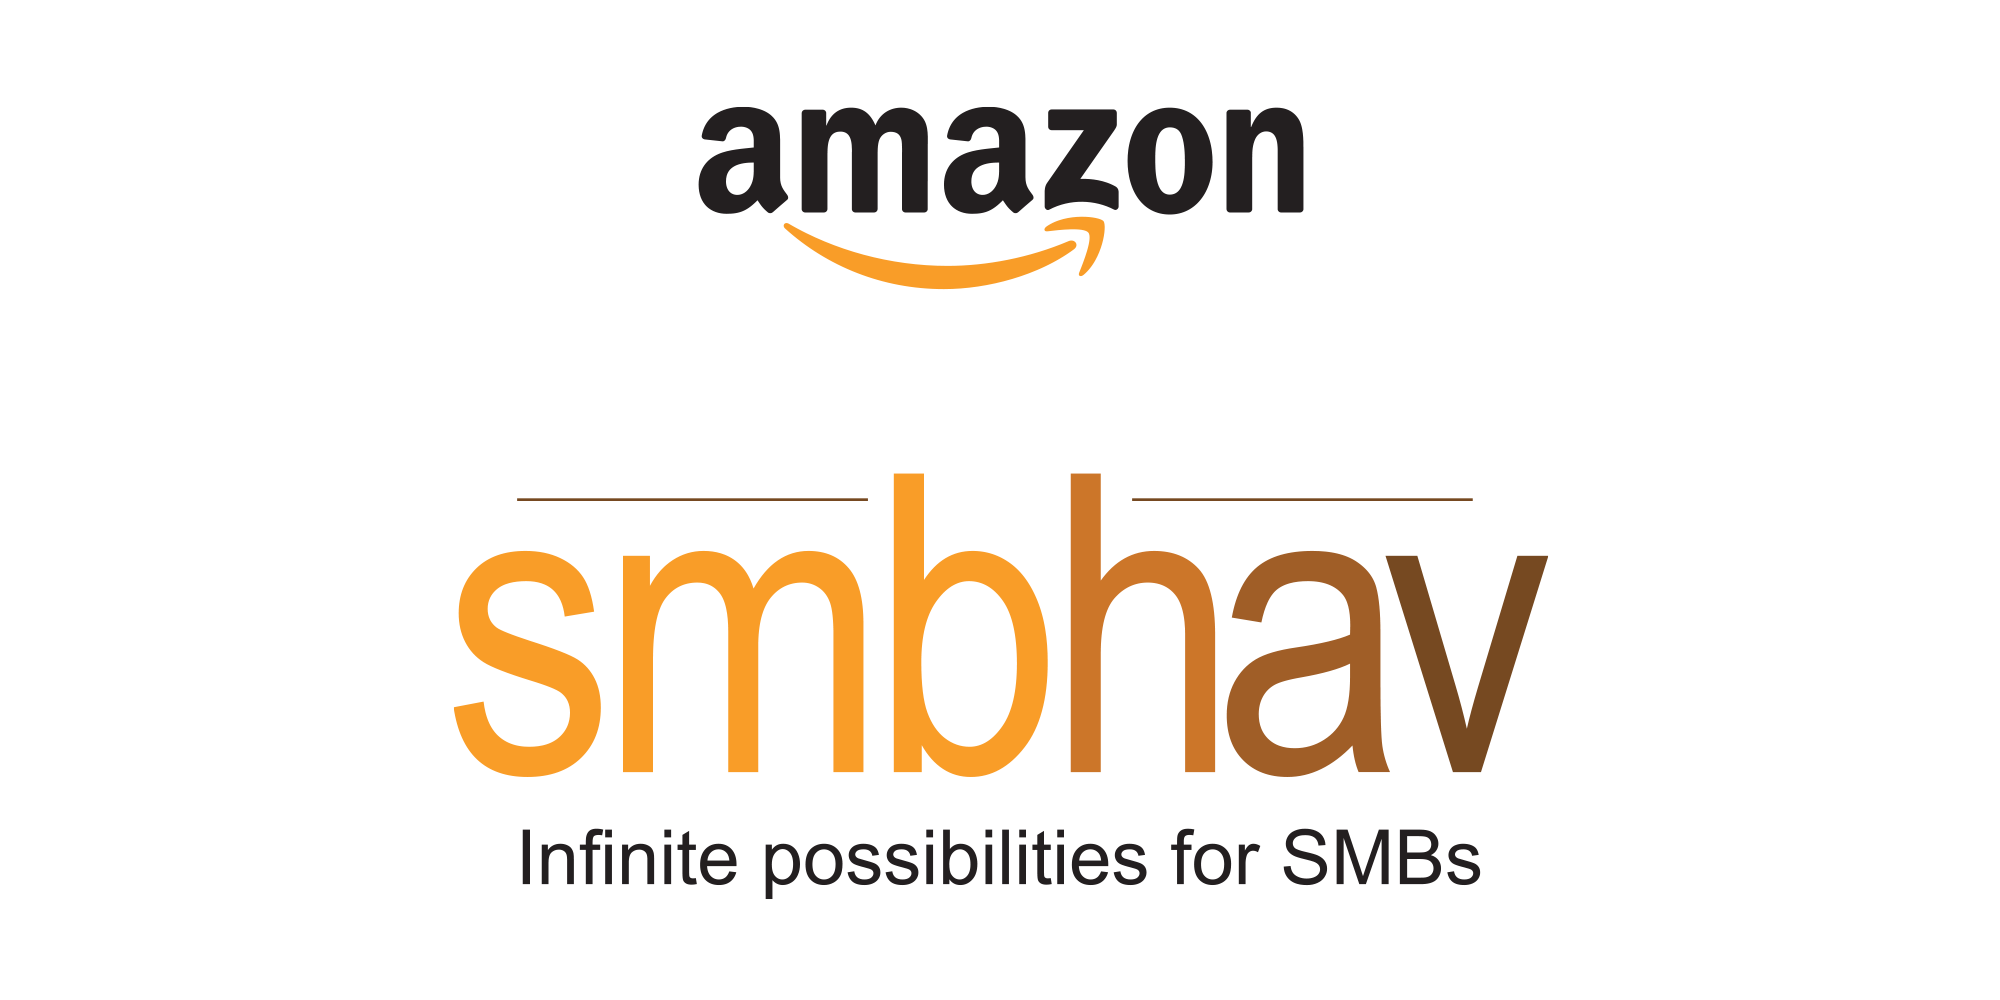 Amazon Smbhav Event Logo